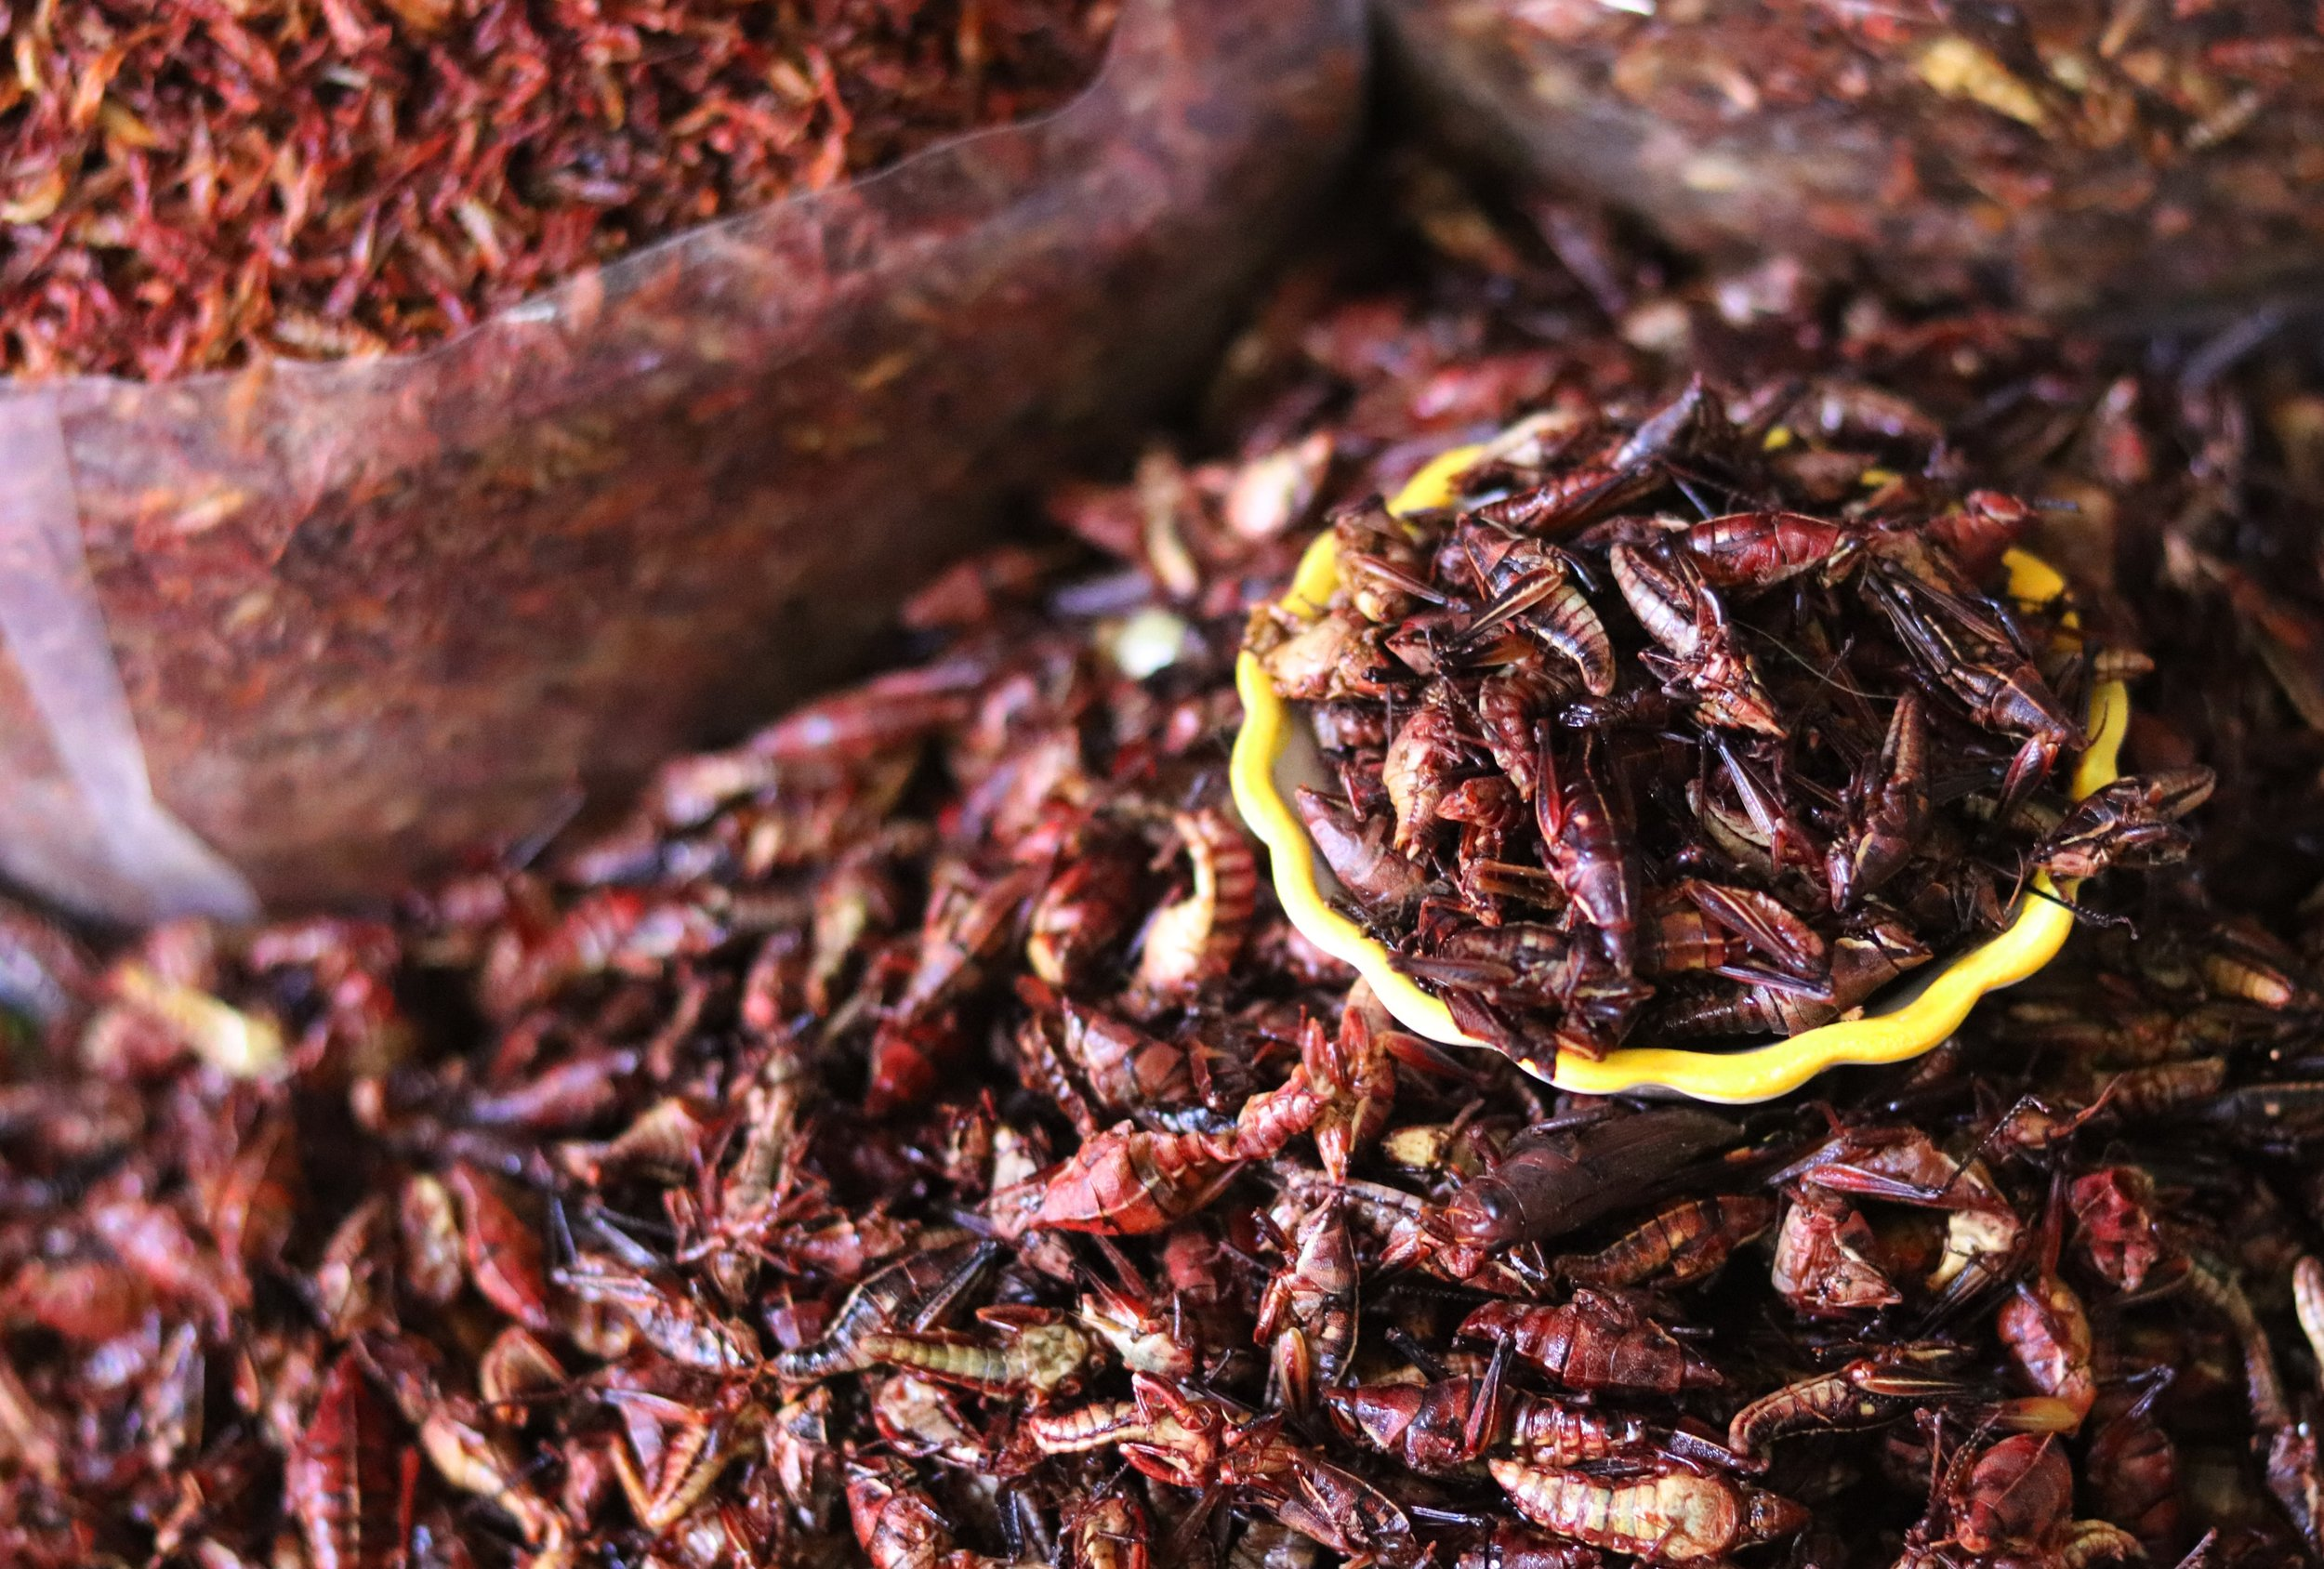 is eating insects ethical